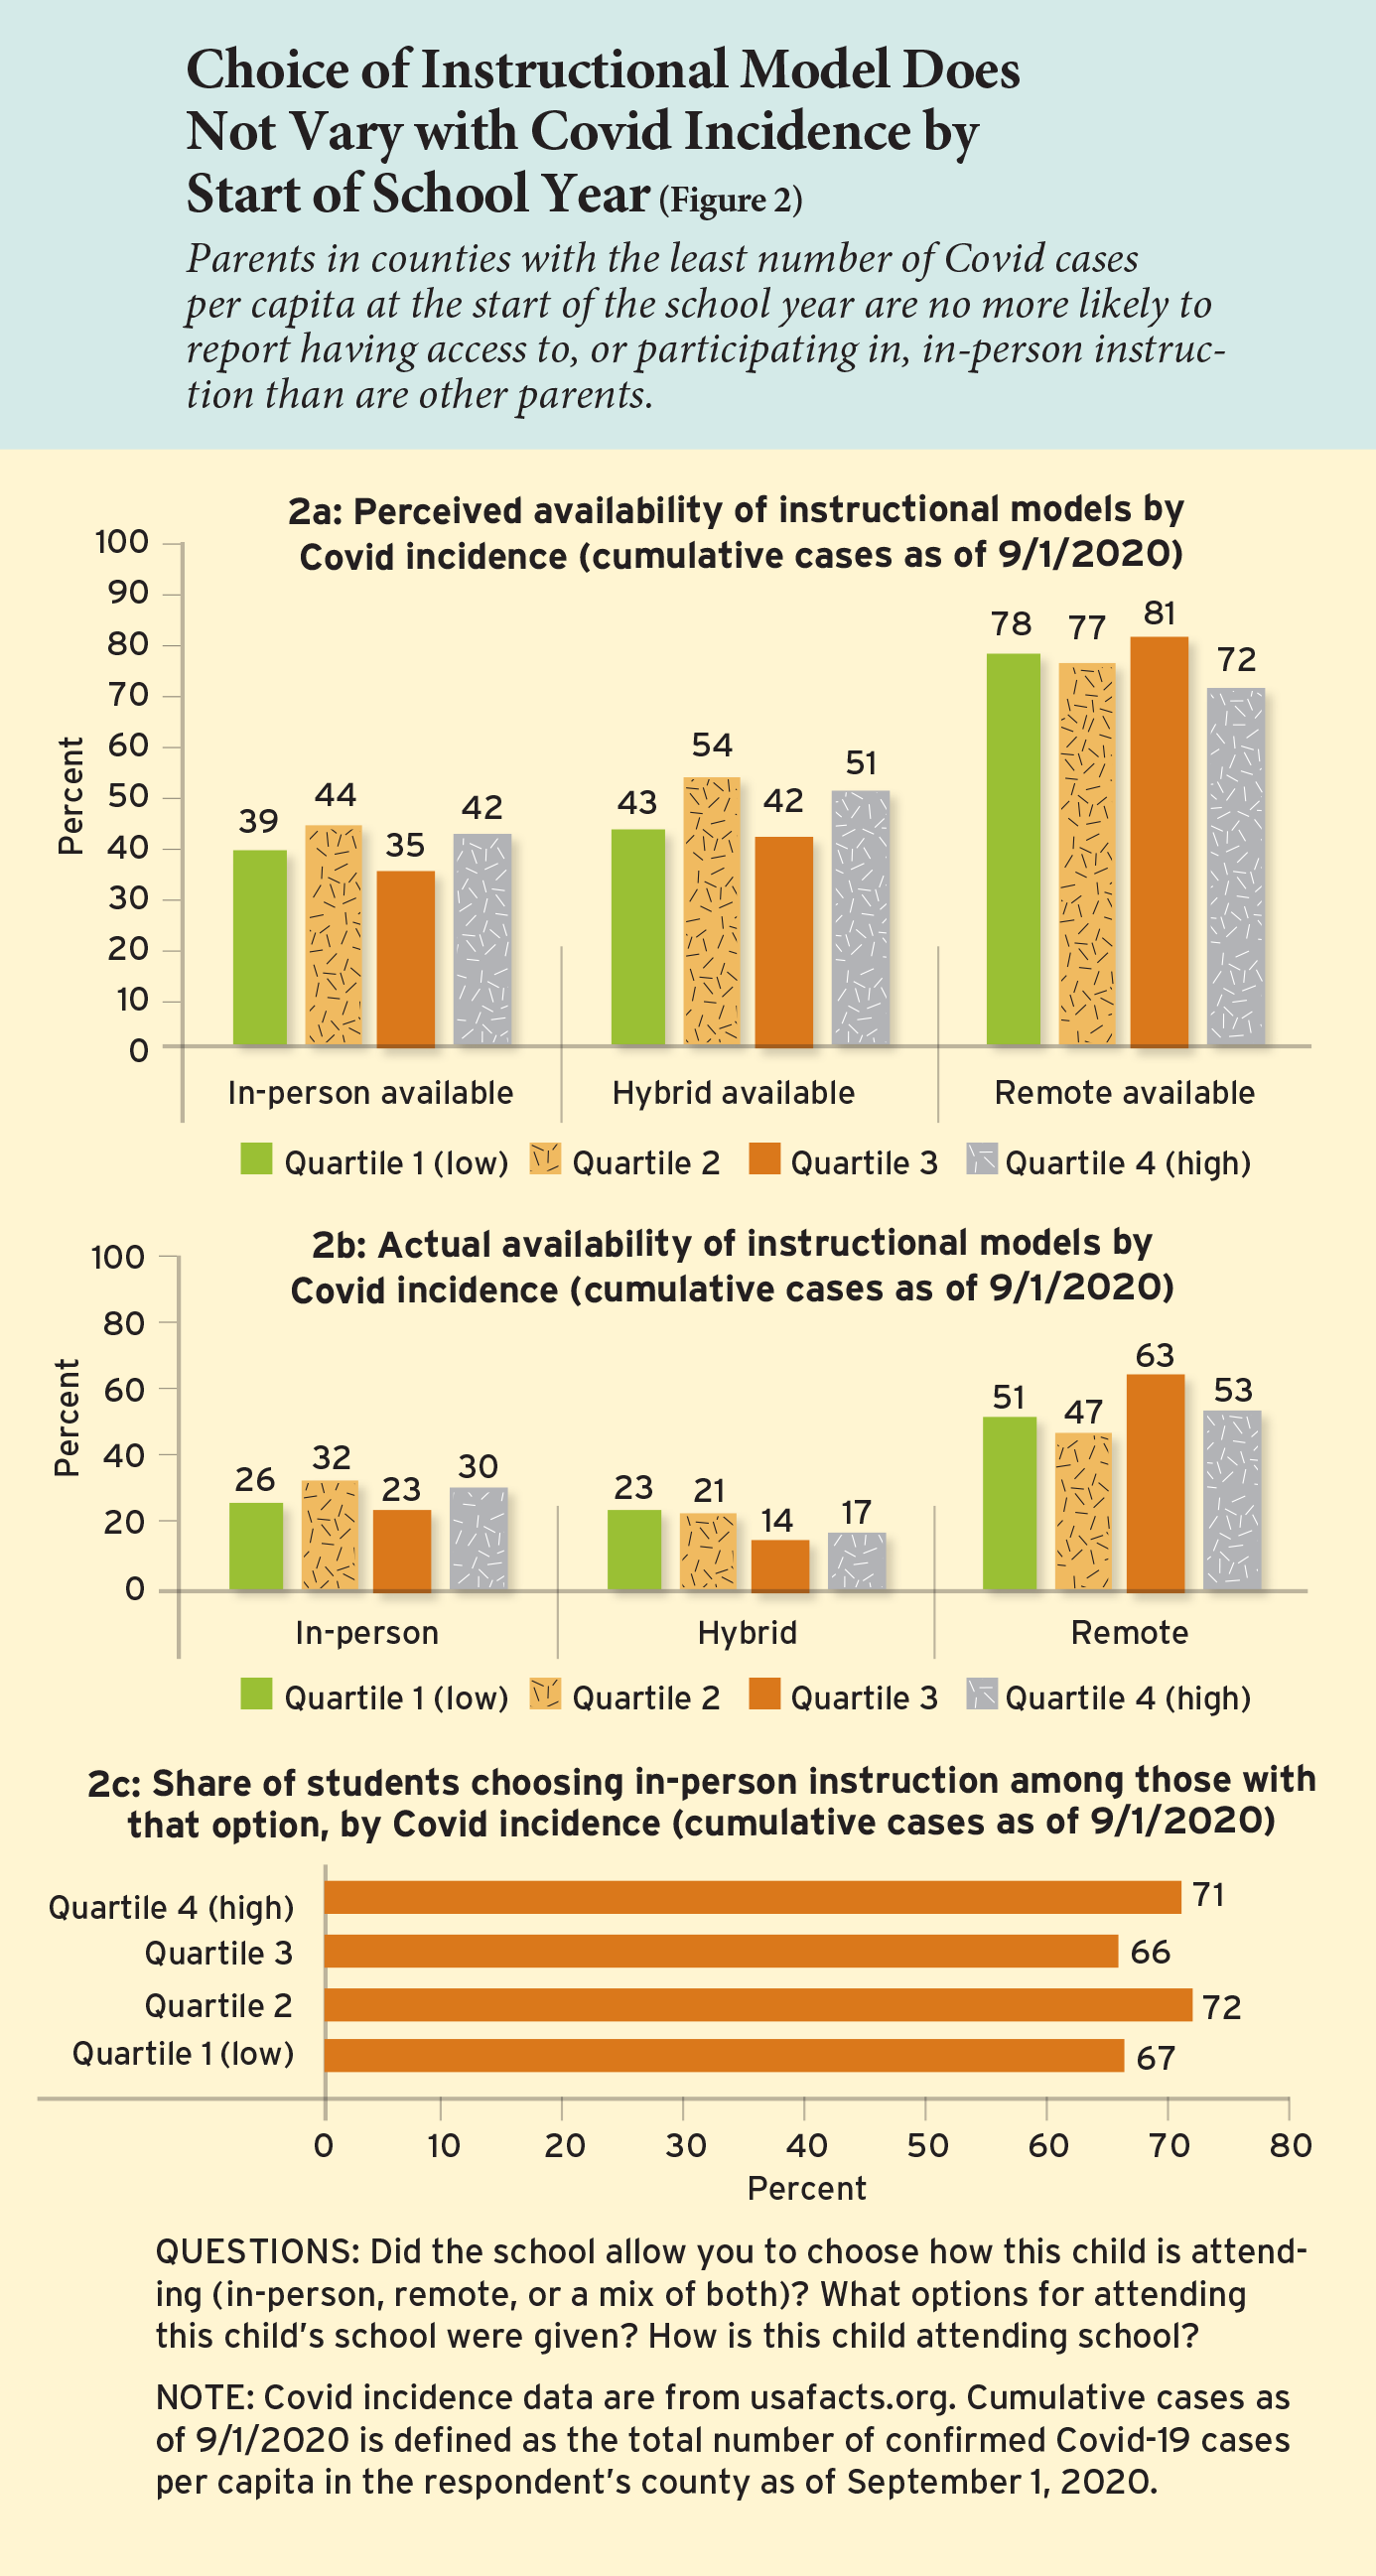 Choice of Instructional Model Does Not Vary with Covid Incidence by Start of School Year (Figure 2)